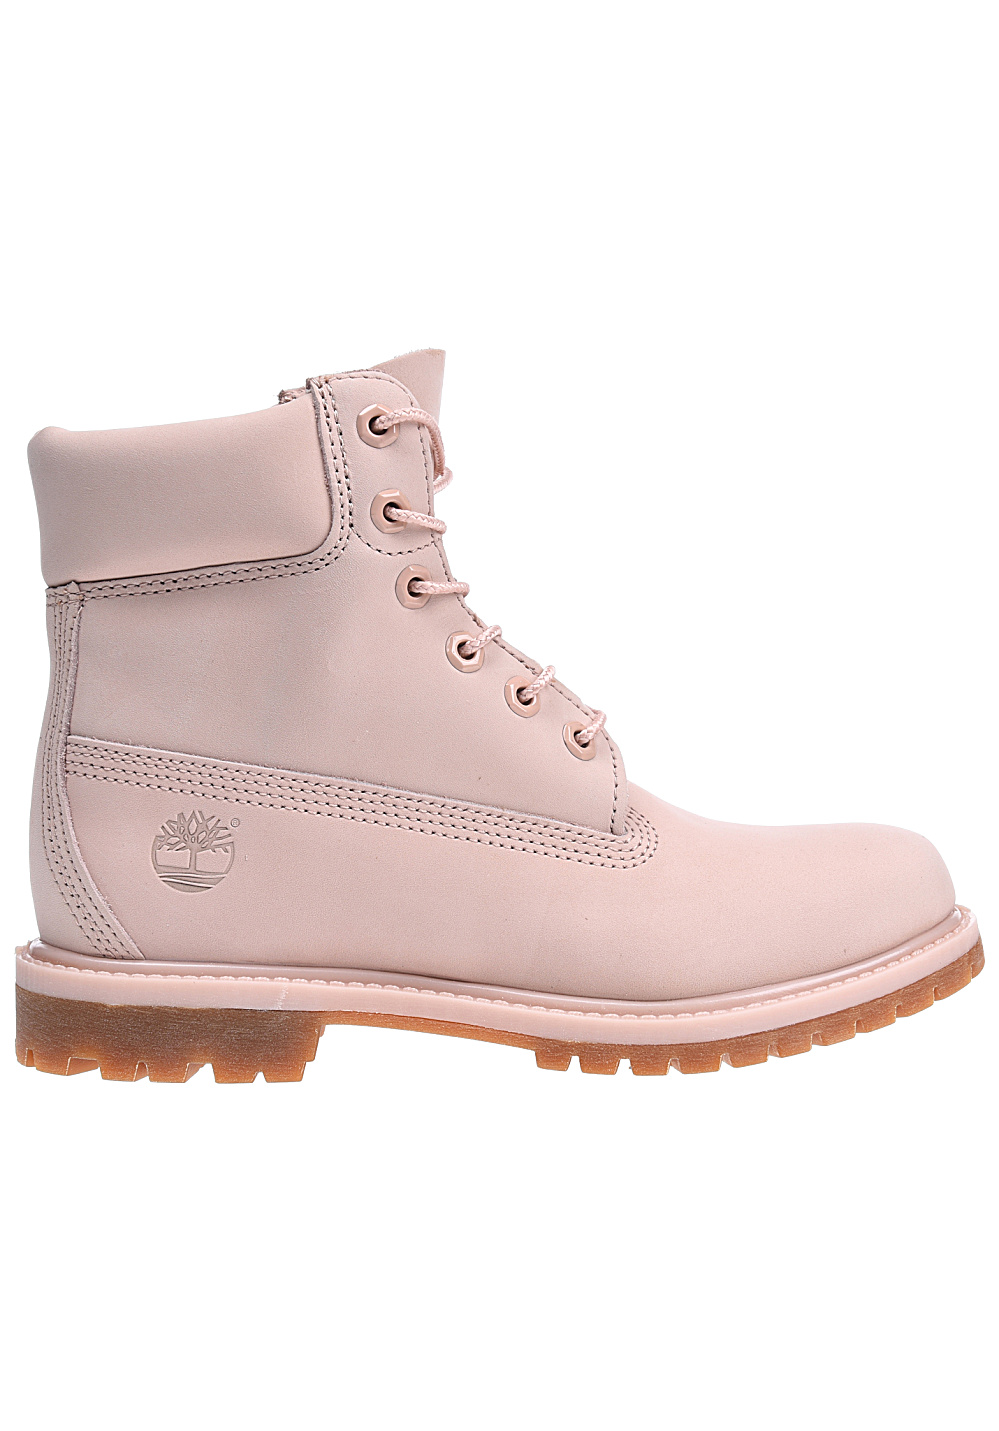 TIMBERLAND 6 inch Premium Bottes pour Femme Rose